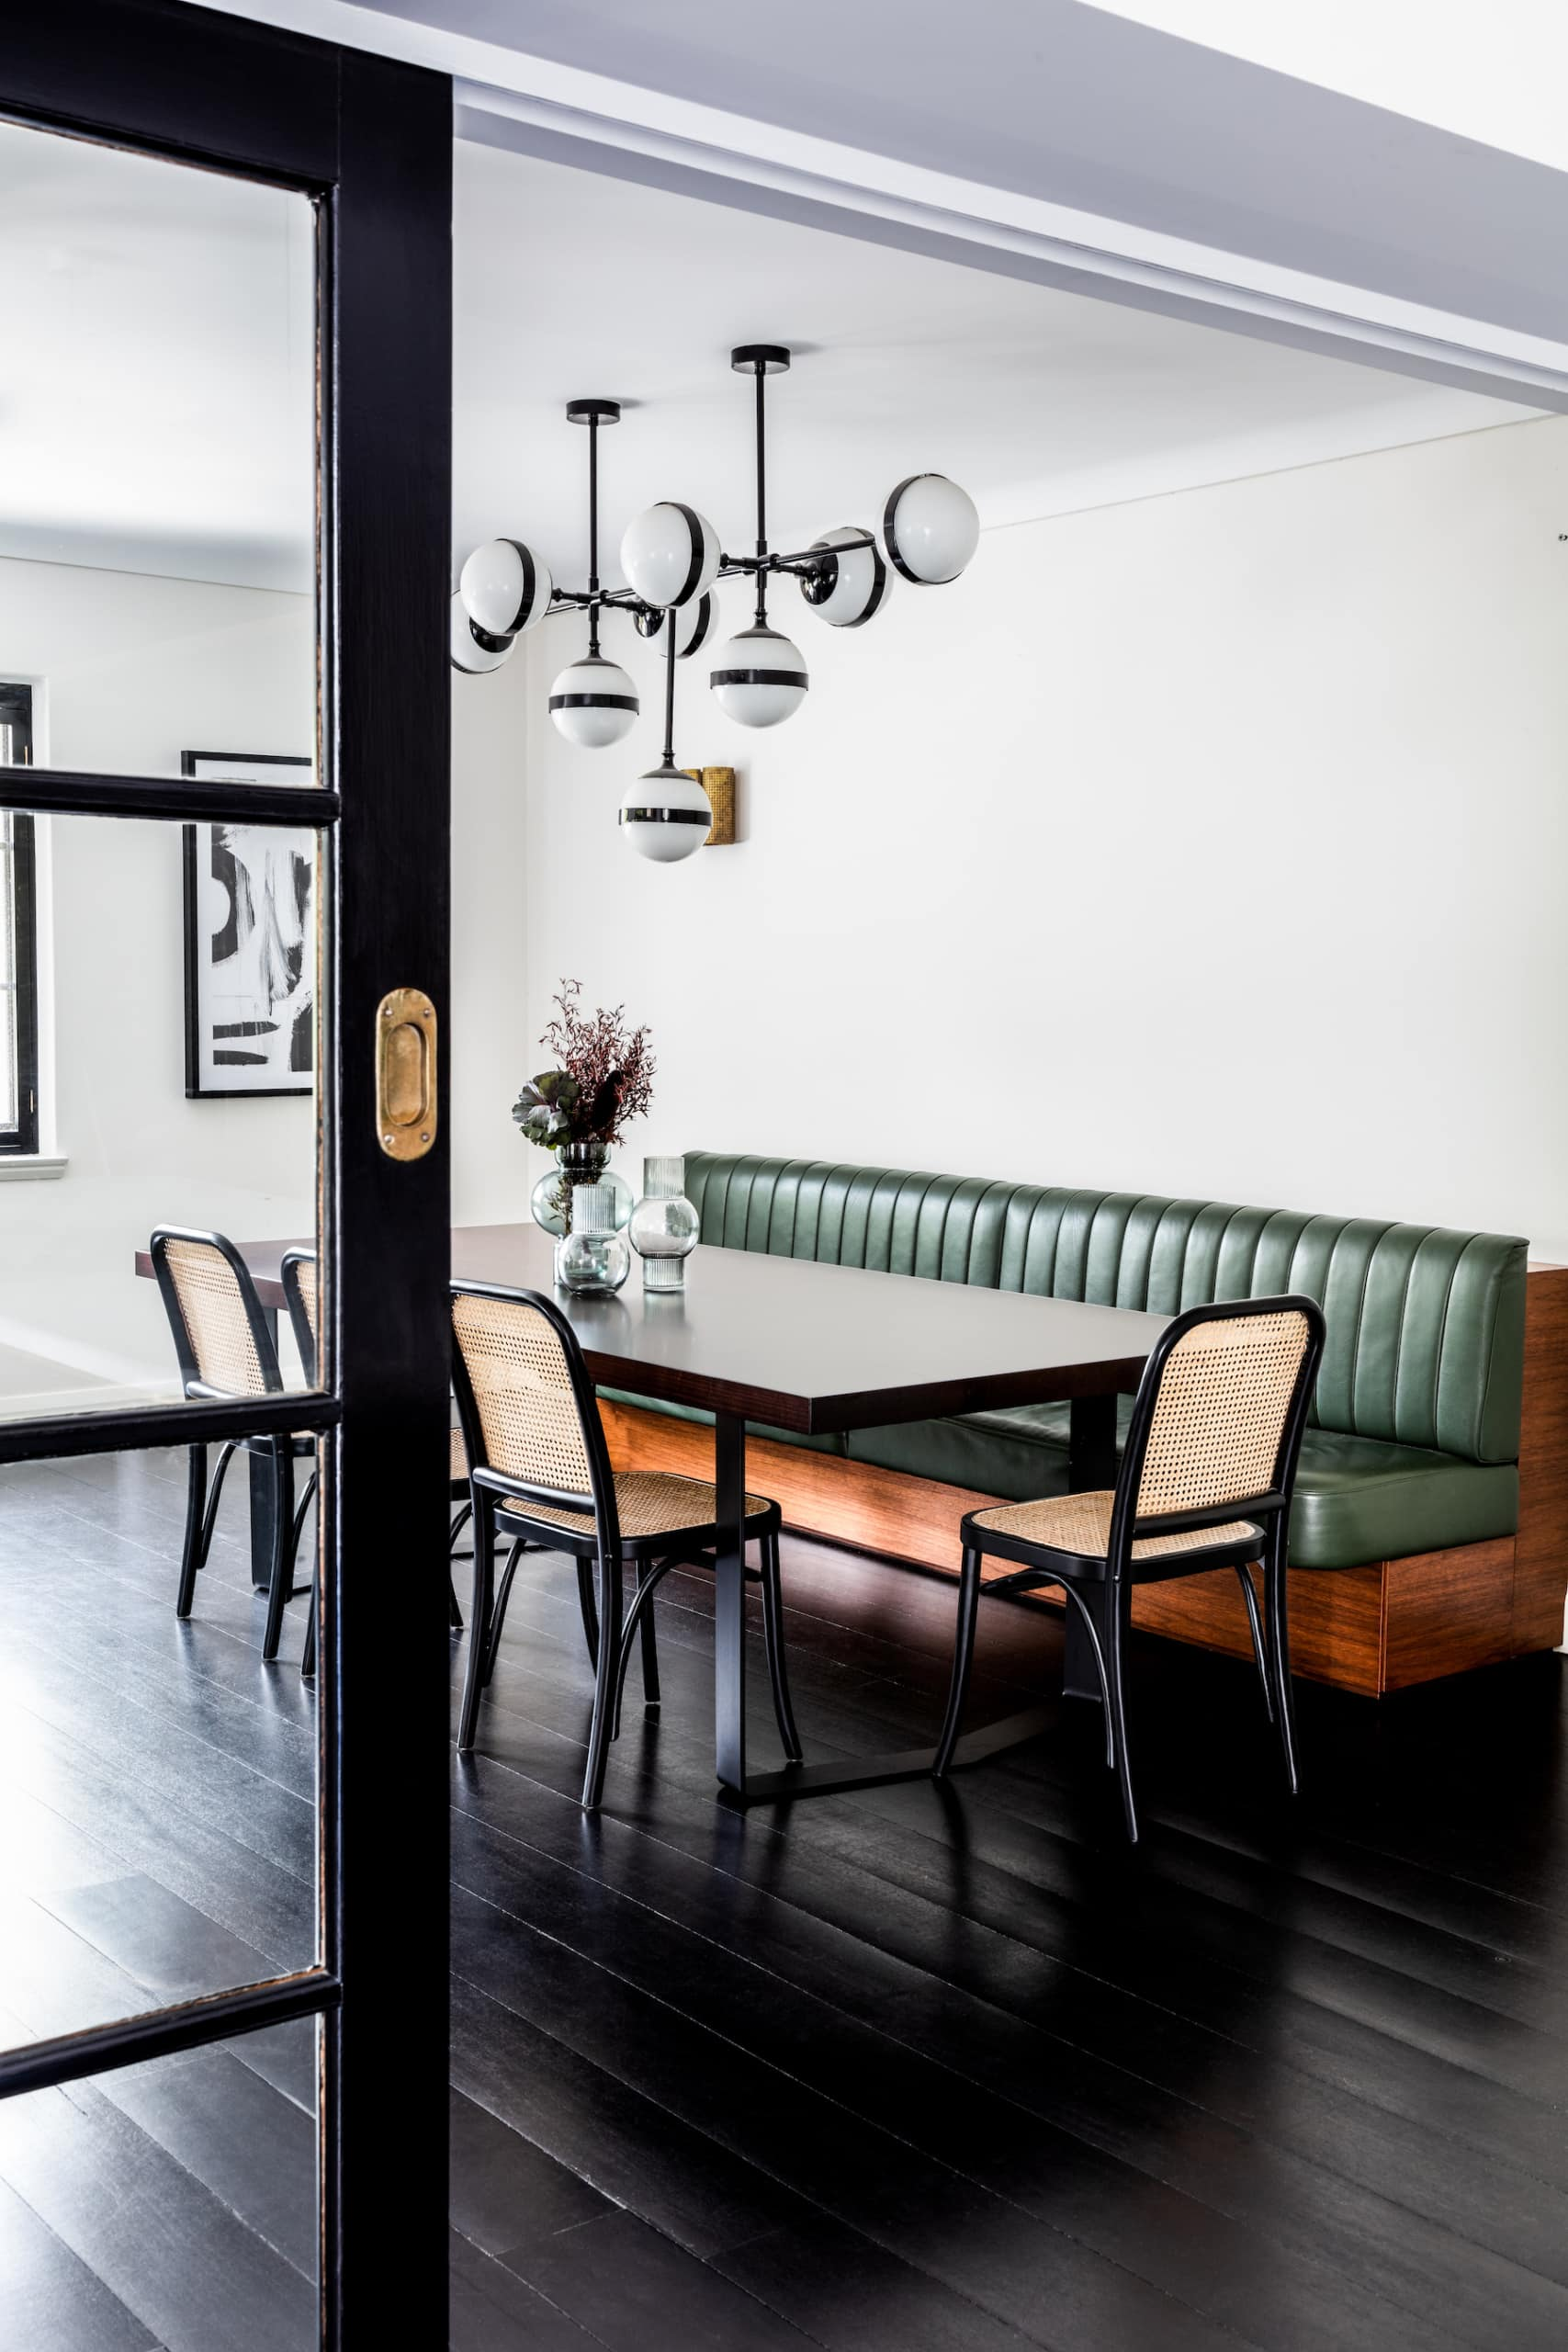 oz design abby dining chairs in chic dining room with leather banquette seating